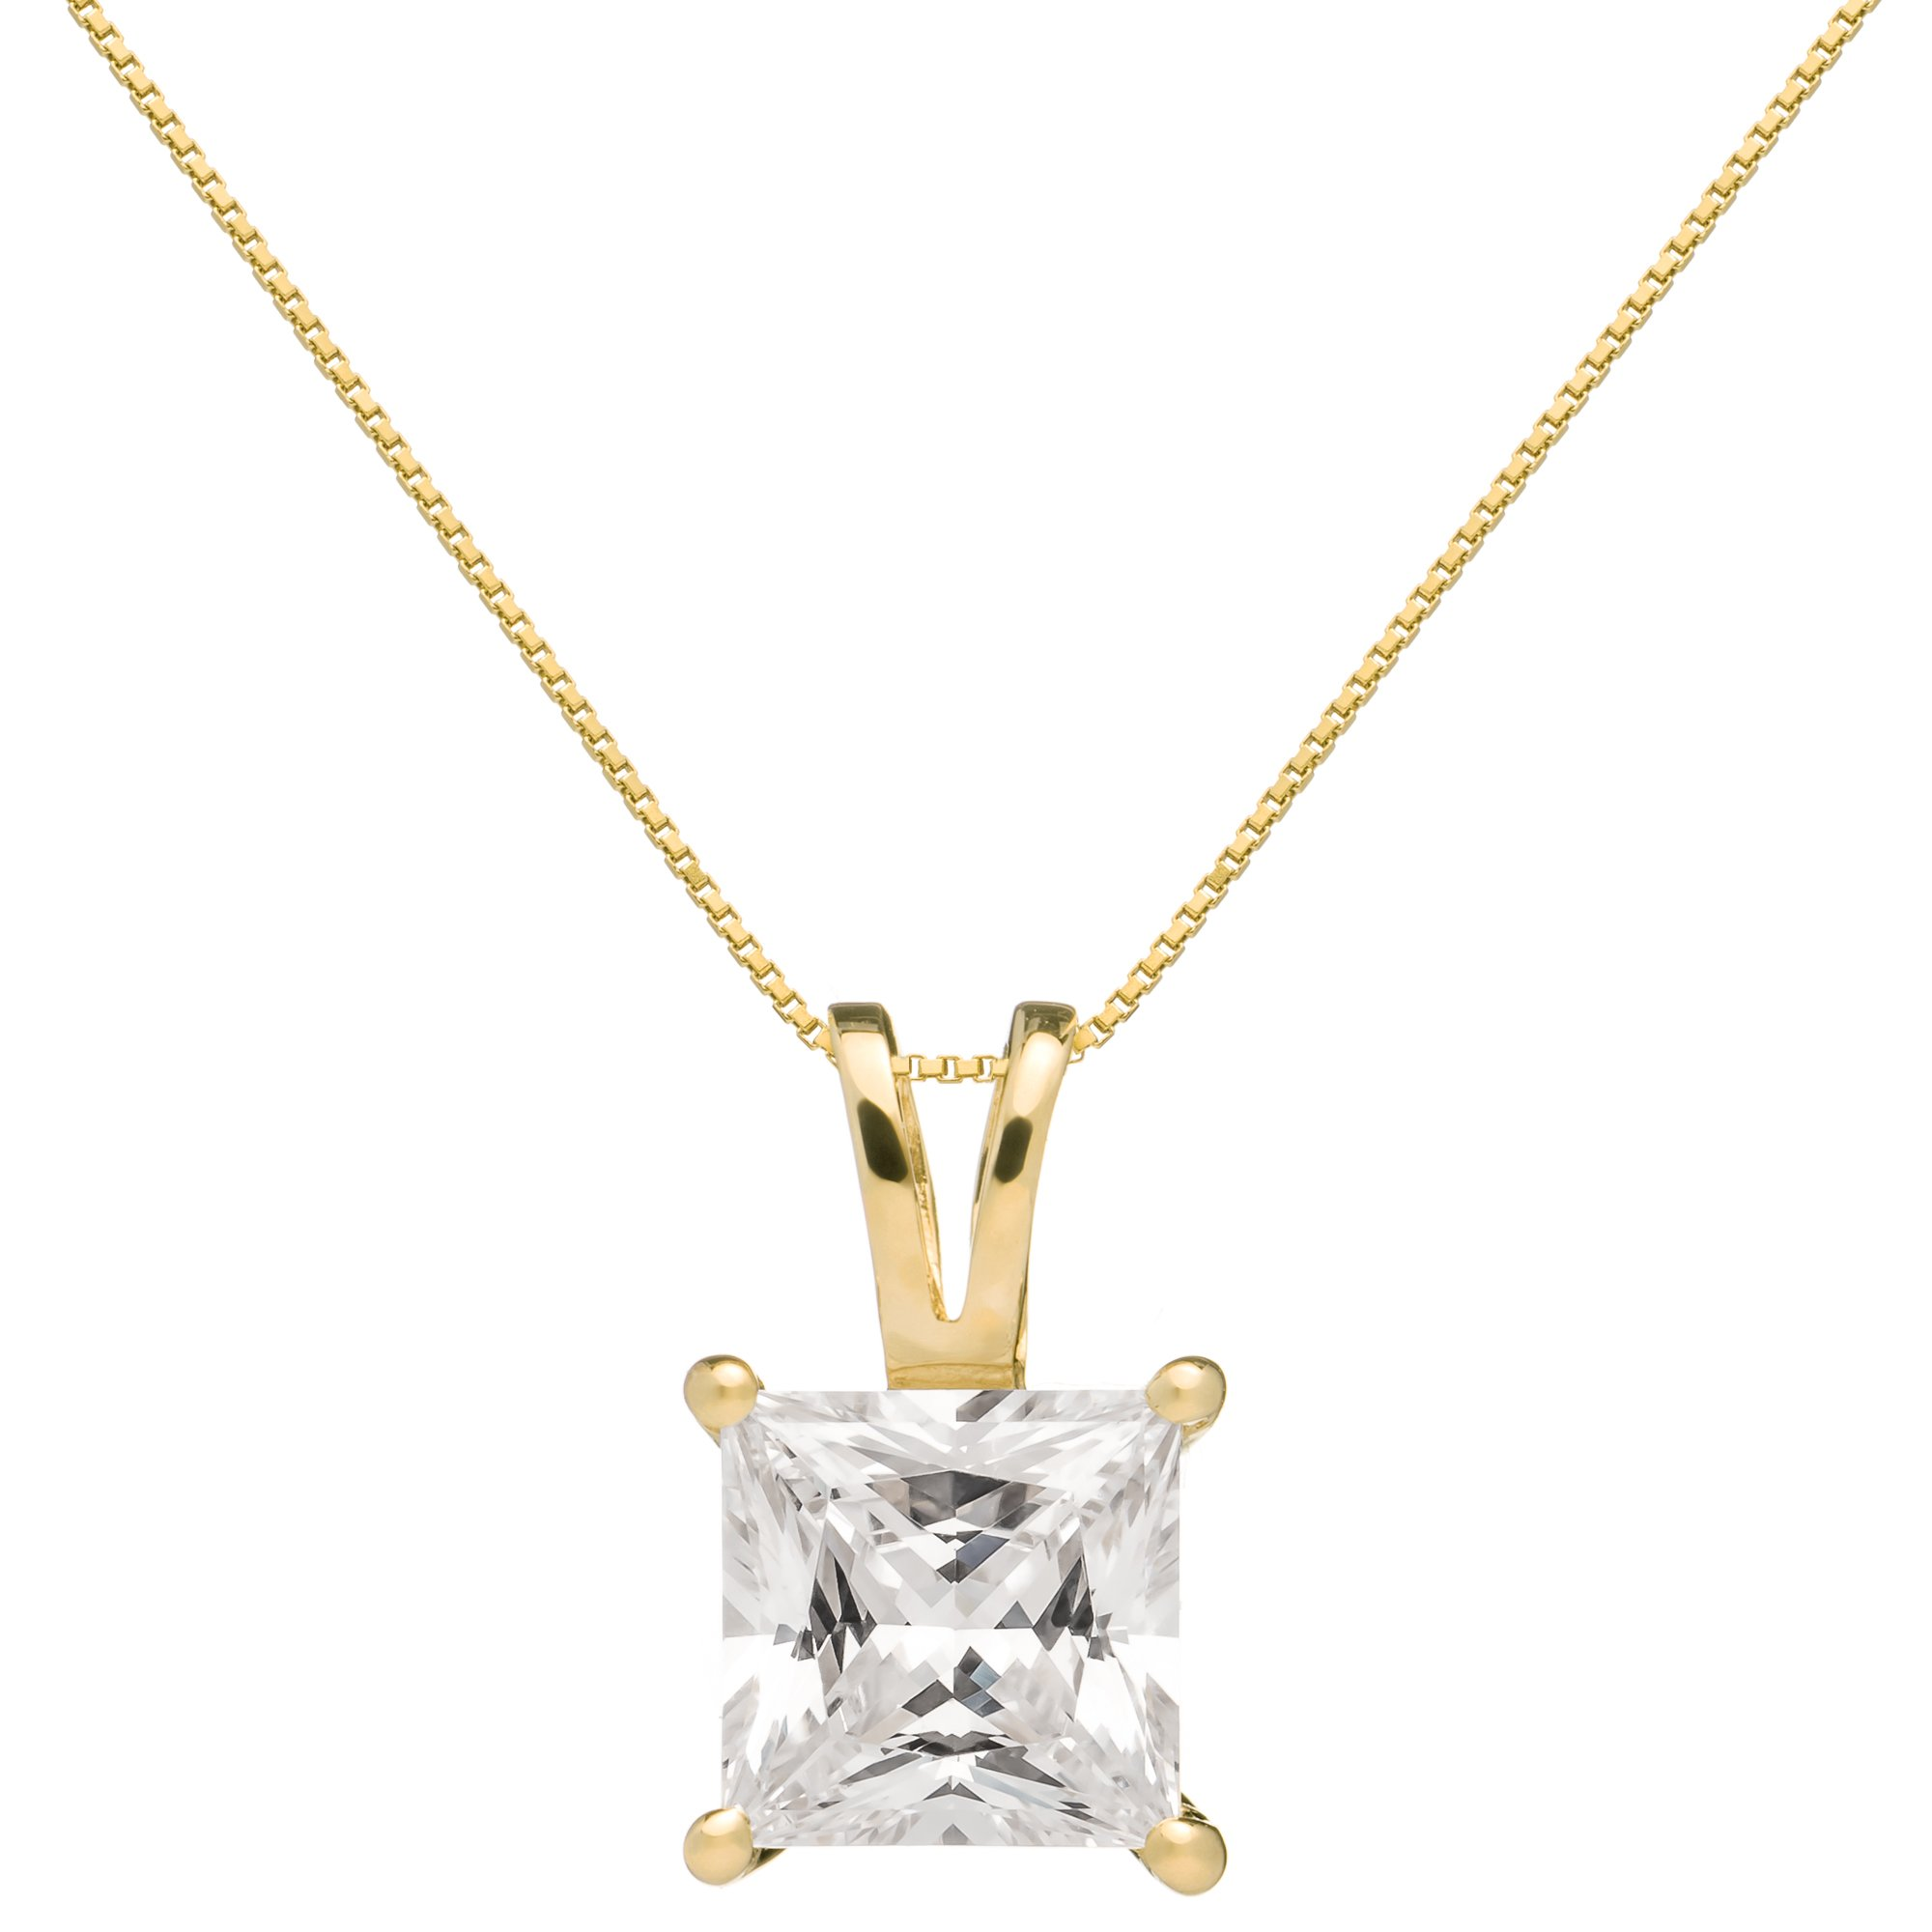 14K Solid Yellow Gold Princess Cut Cubic Zirconia Solitaire Pendant Necklace (2 Carat), 16 inch .50mm Box Link Chain, Gift Box by Everyday Elegance Jewelry (Image #1)